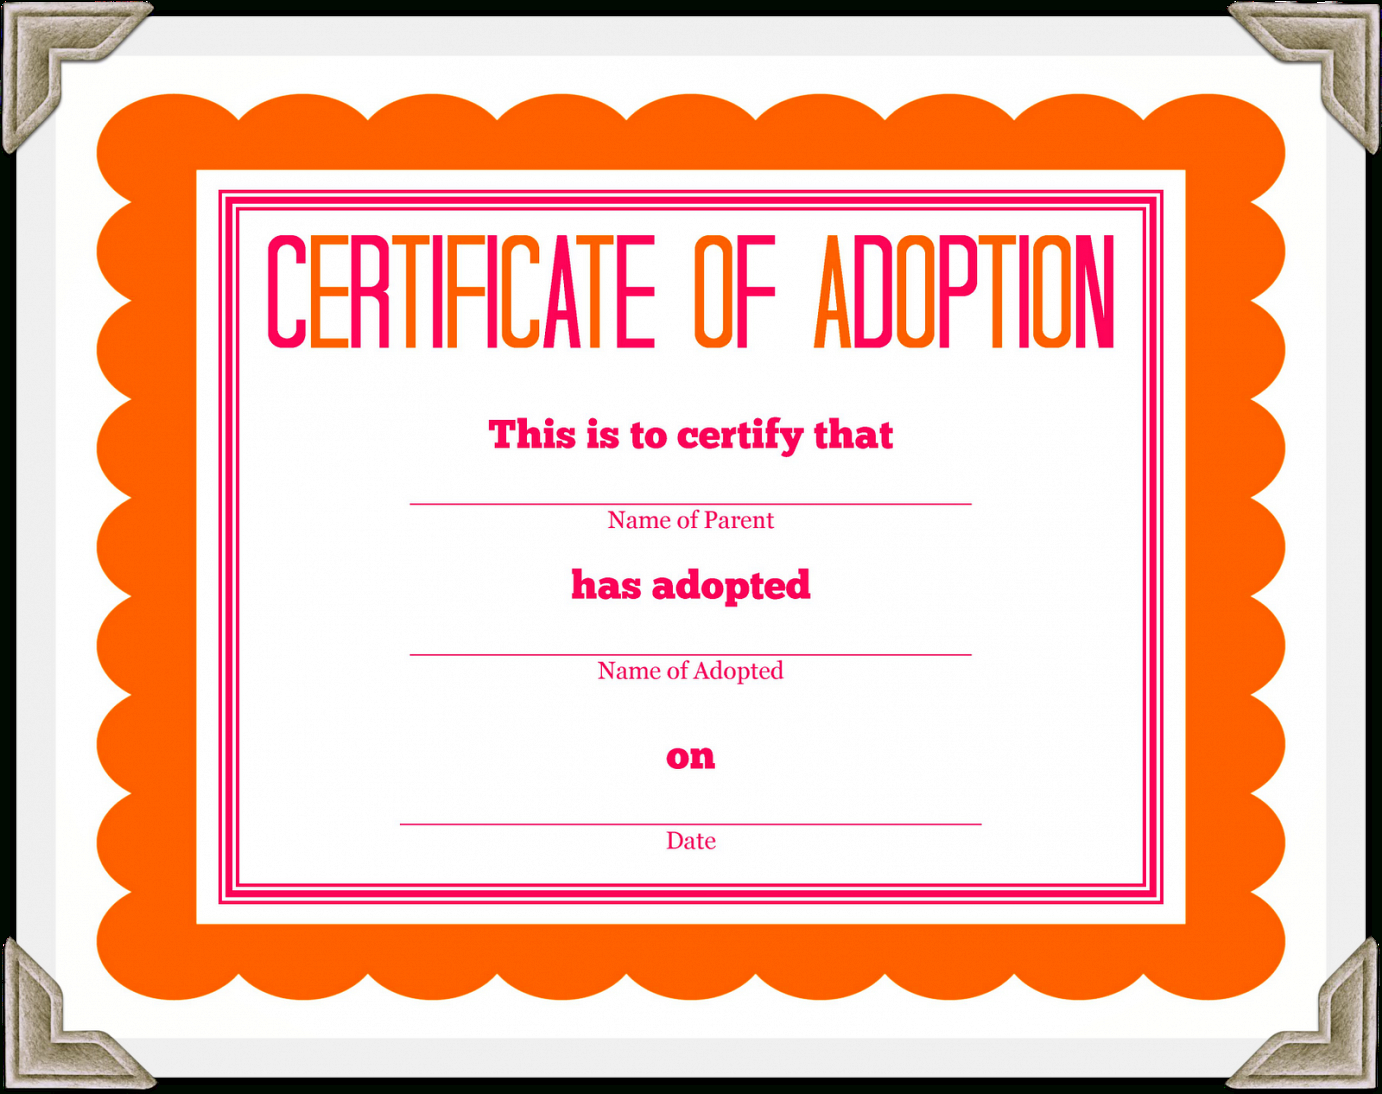 Adoption Certificate Template Free - The O Guide for Toy Adoption Certificate Template